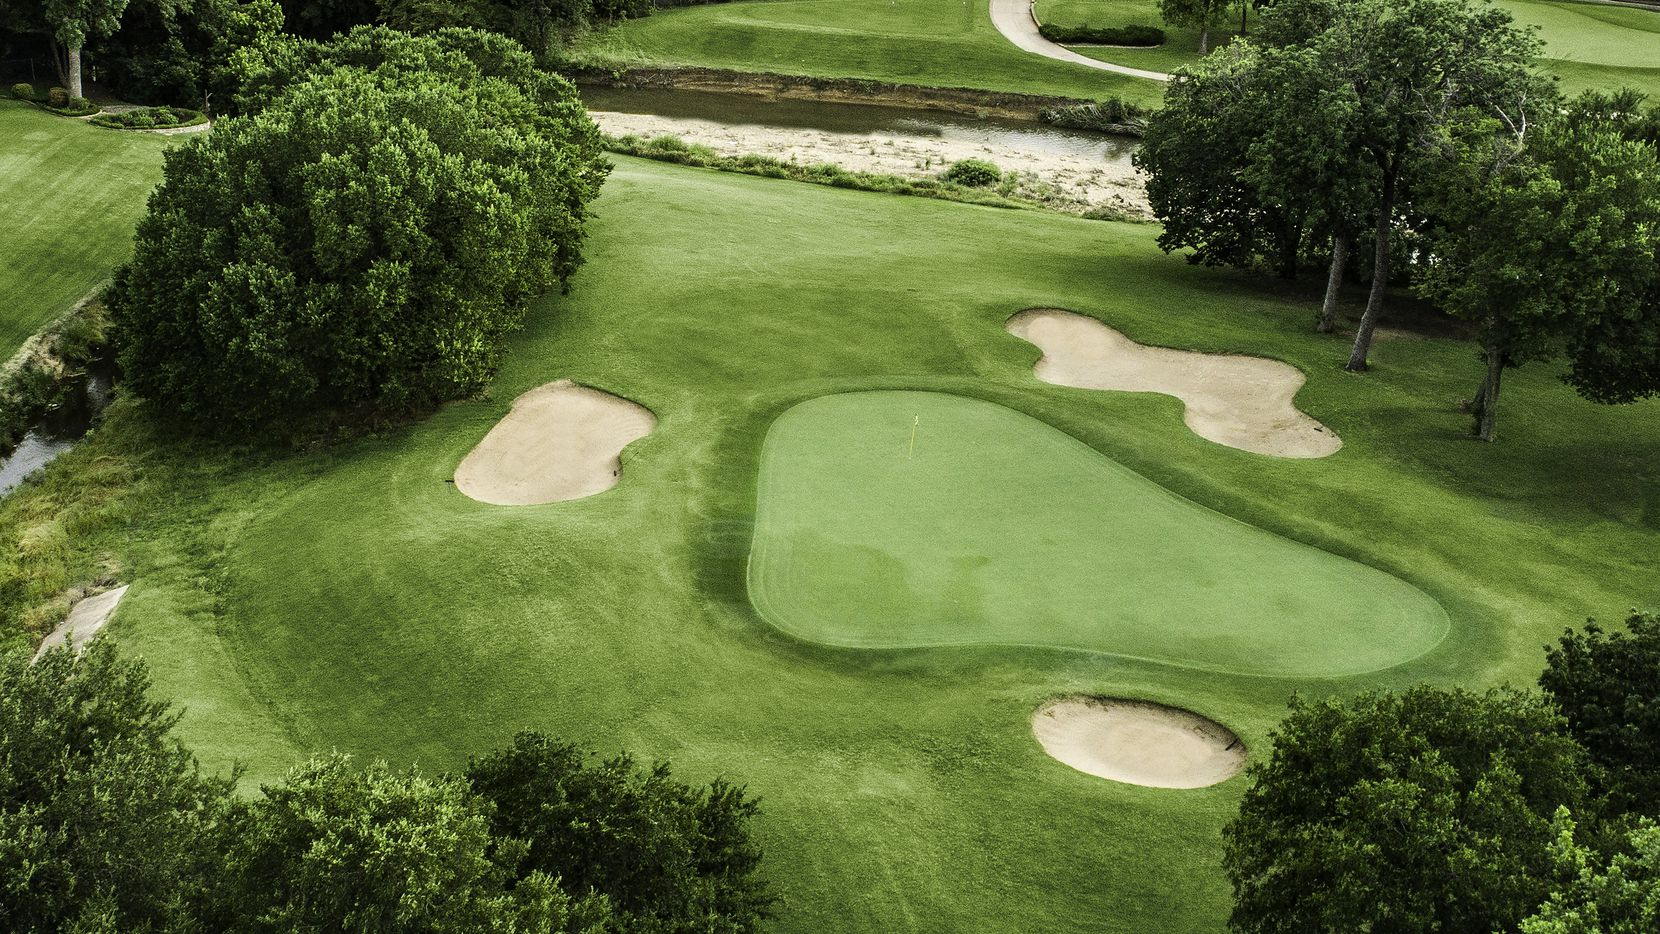 Iron Horse Golf Course in North Richland Hills, Texas, will formally re-open to the public Saturday, Sept. 19, 2020 following an extensive $3 million renovation. The renovation was overseen by Jeff Brauer, a golf course architect based in Arlington, Texas. Pictured is the fifth hole. Pictured is the 212-yard par-3 fifth hole.